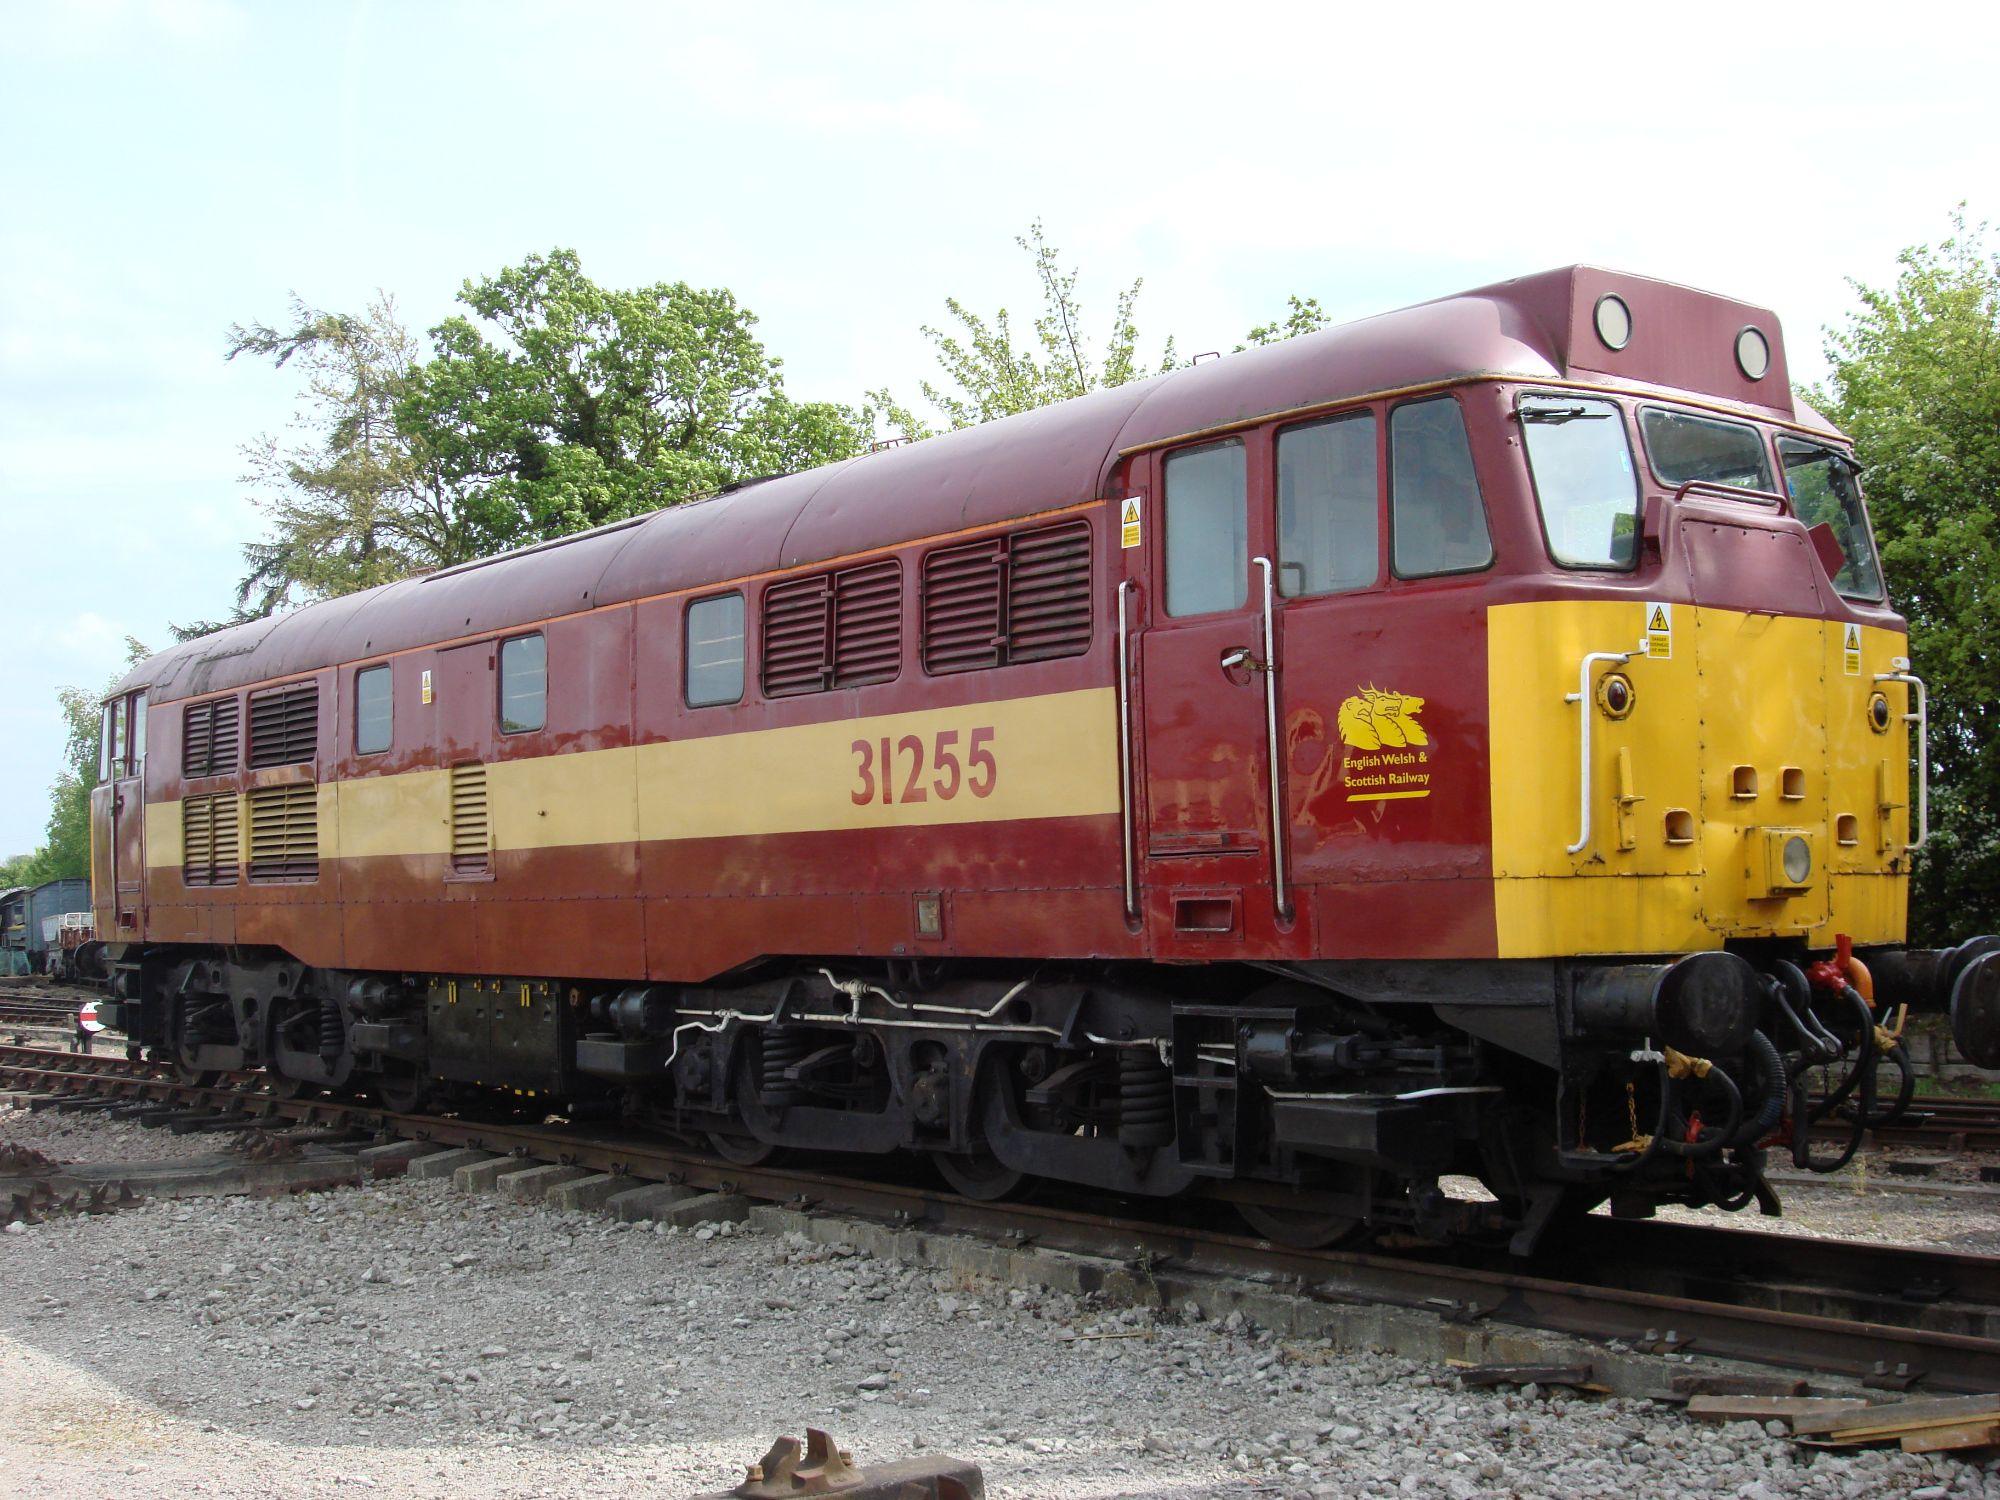 Image showing 31255 in EWS livery